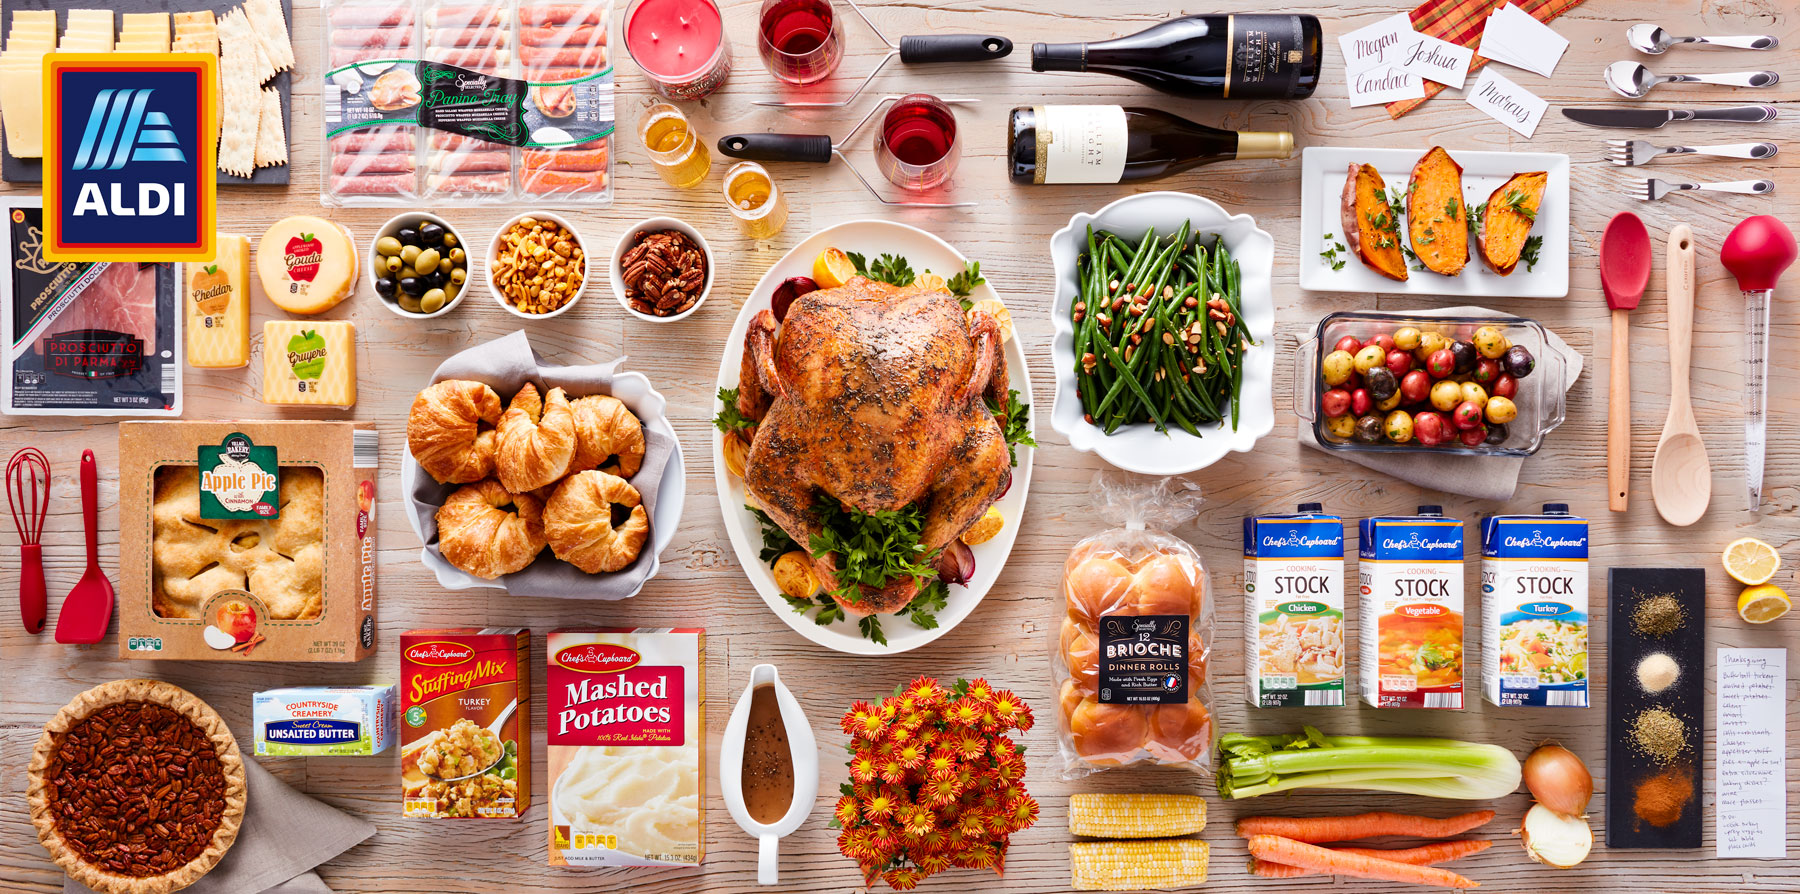 SR_ALDI_20170921_Thanksgiving_1_Knolling_Hero_Wine_083_wTurkey_logo.jpg